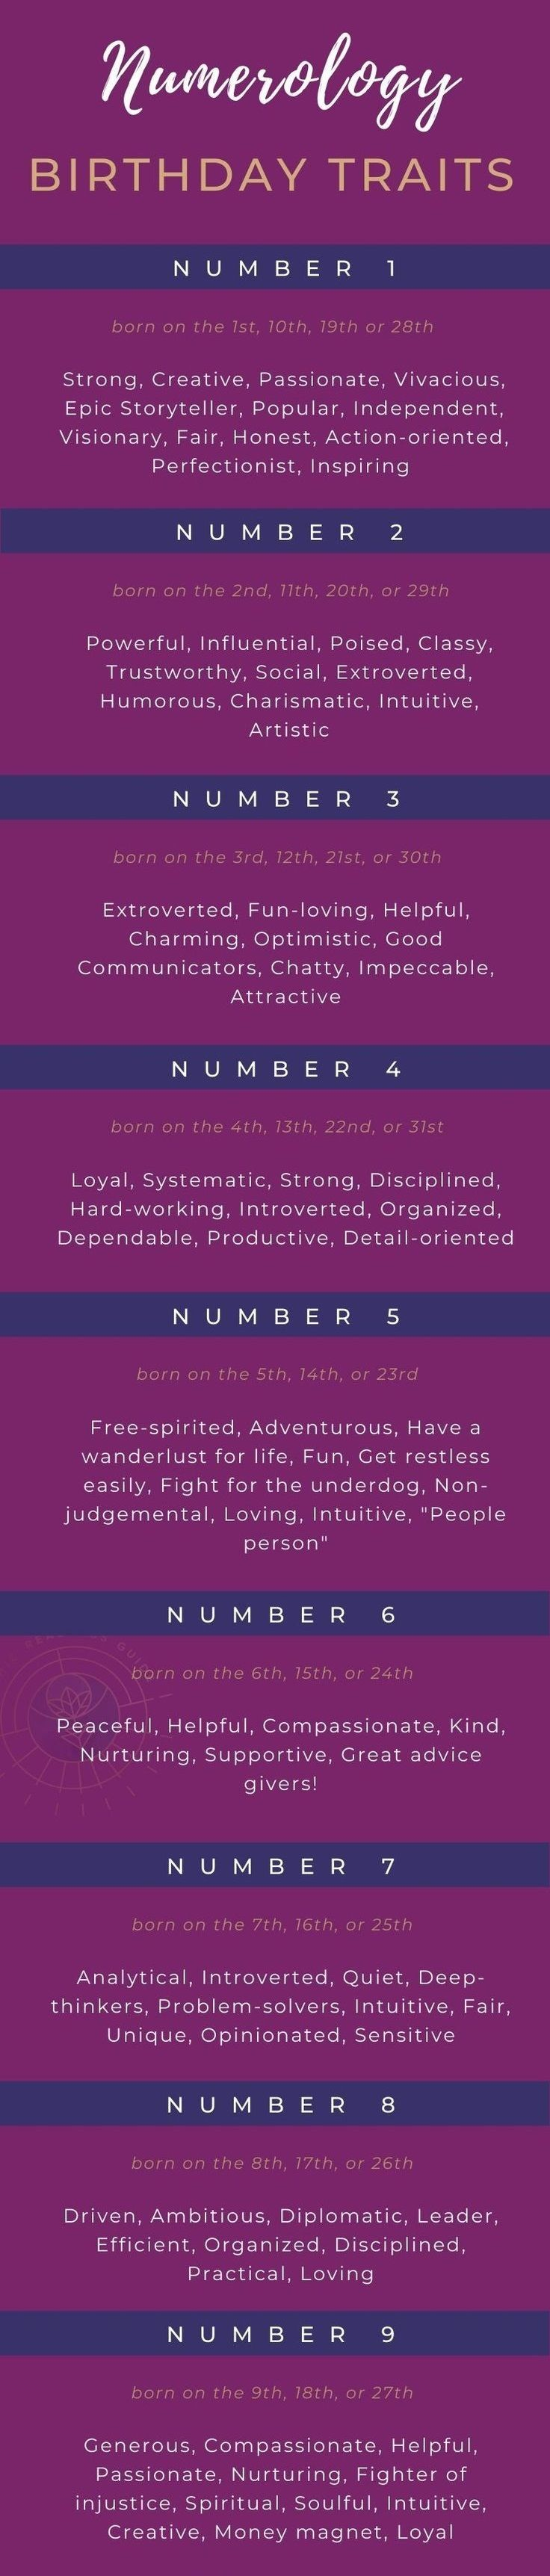 Numerology Birthday traits, numerology life path